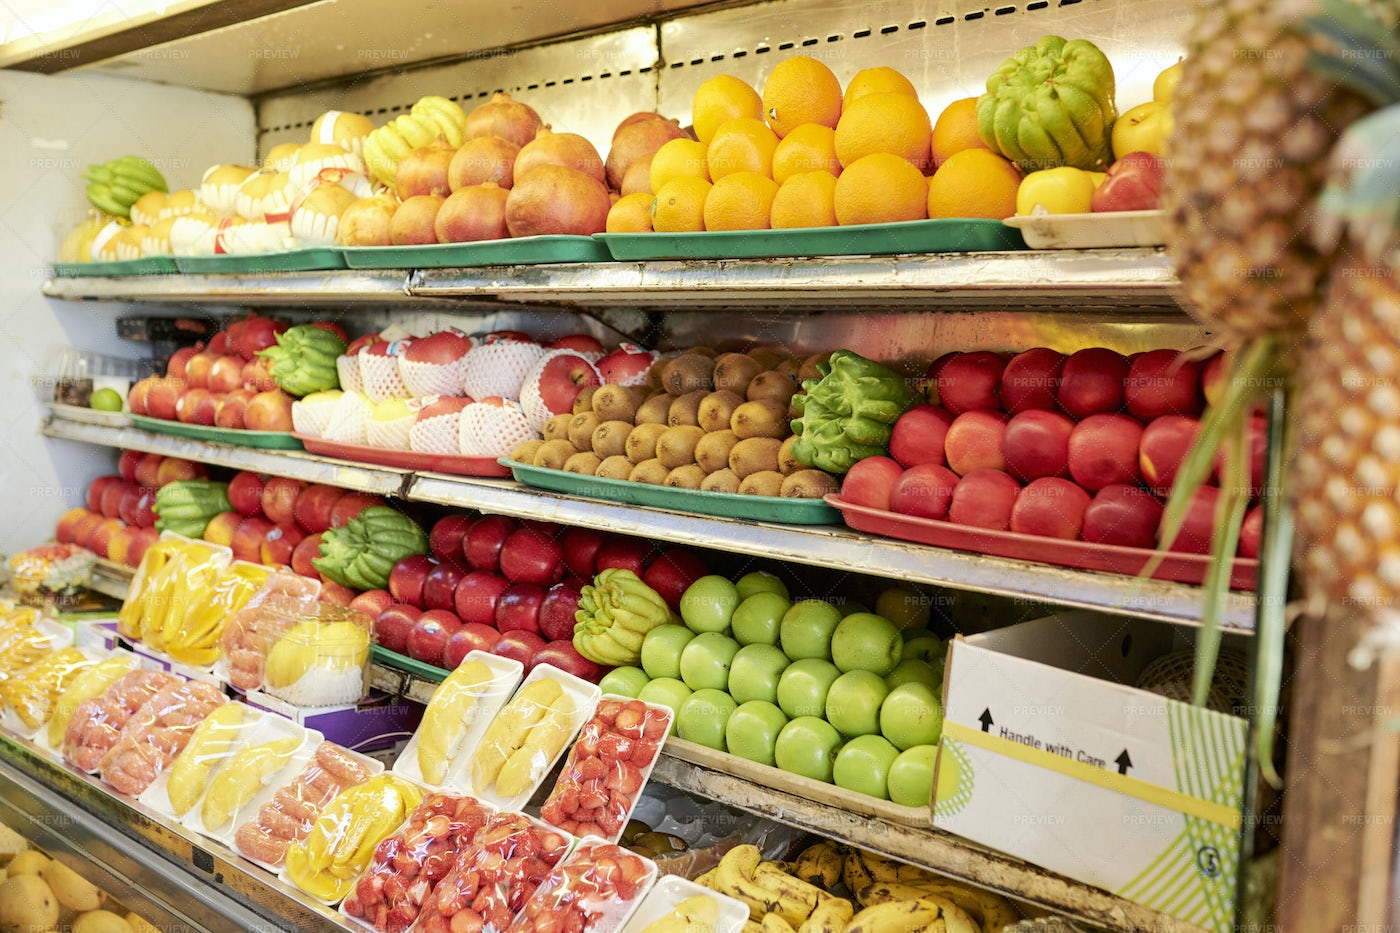 Shelves With Fruits In Supermarket: Stock Photos